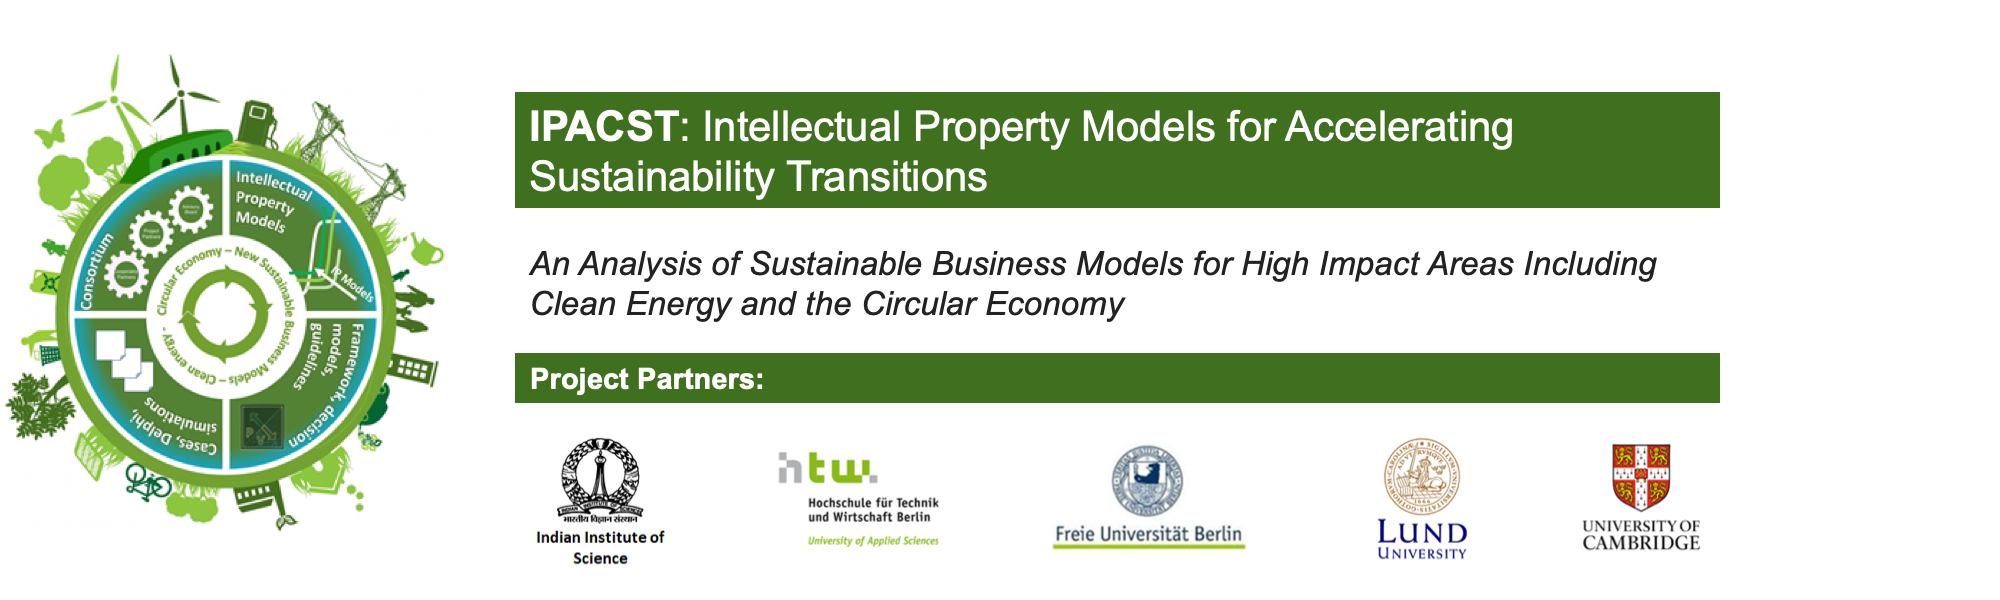 Intellectual Property Models for Accelerating Sustainability Transitions (IPACST)